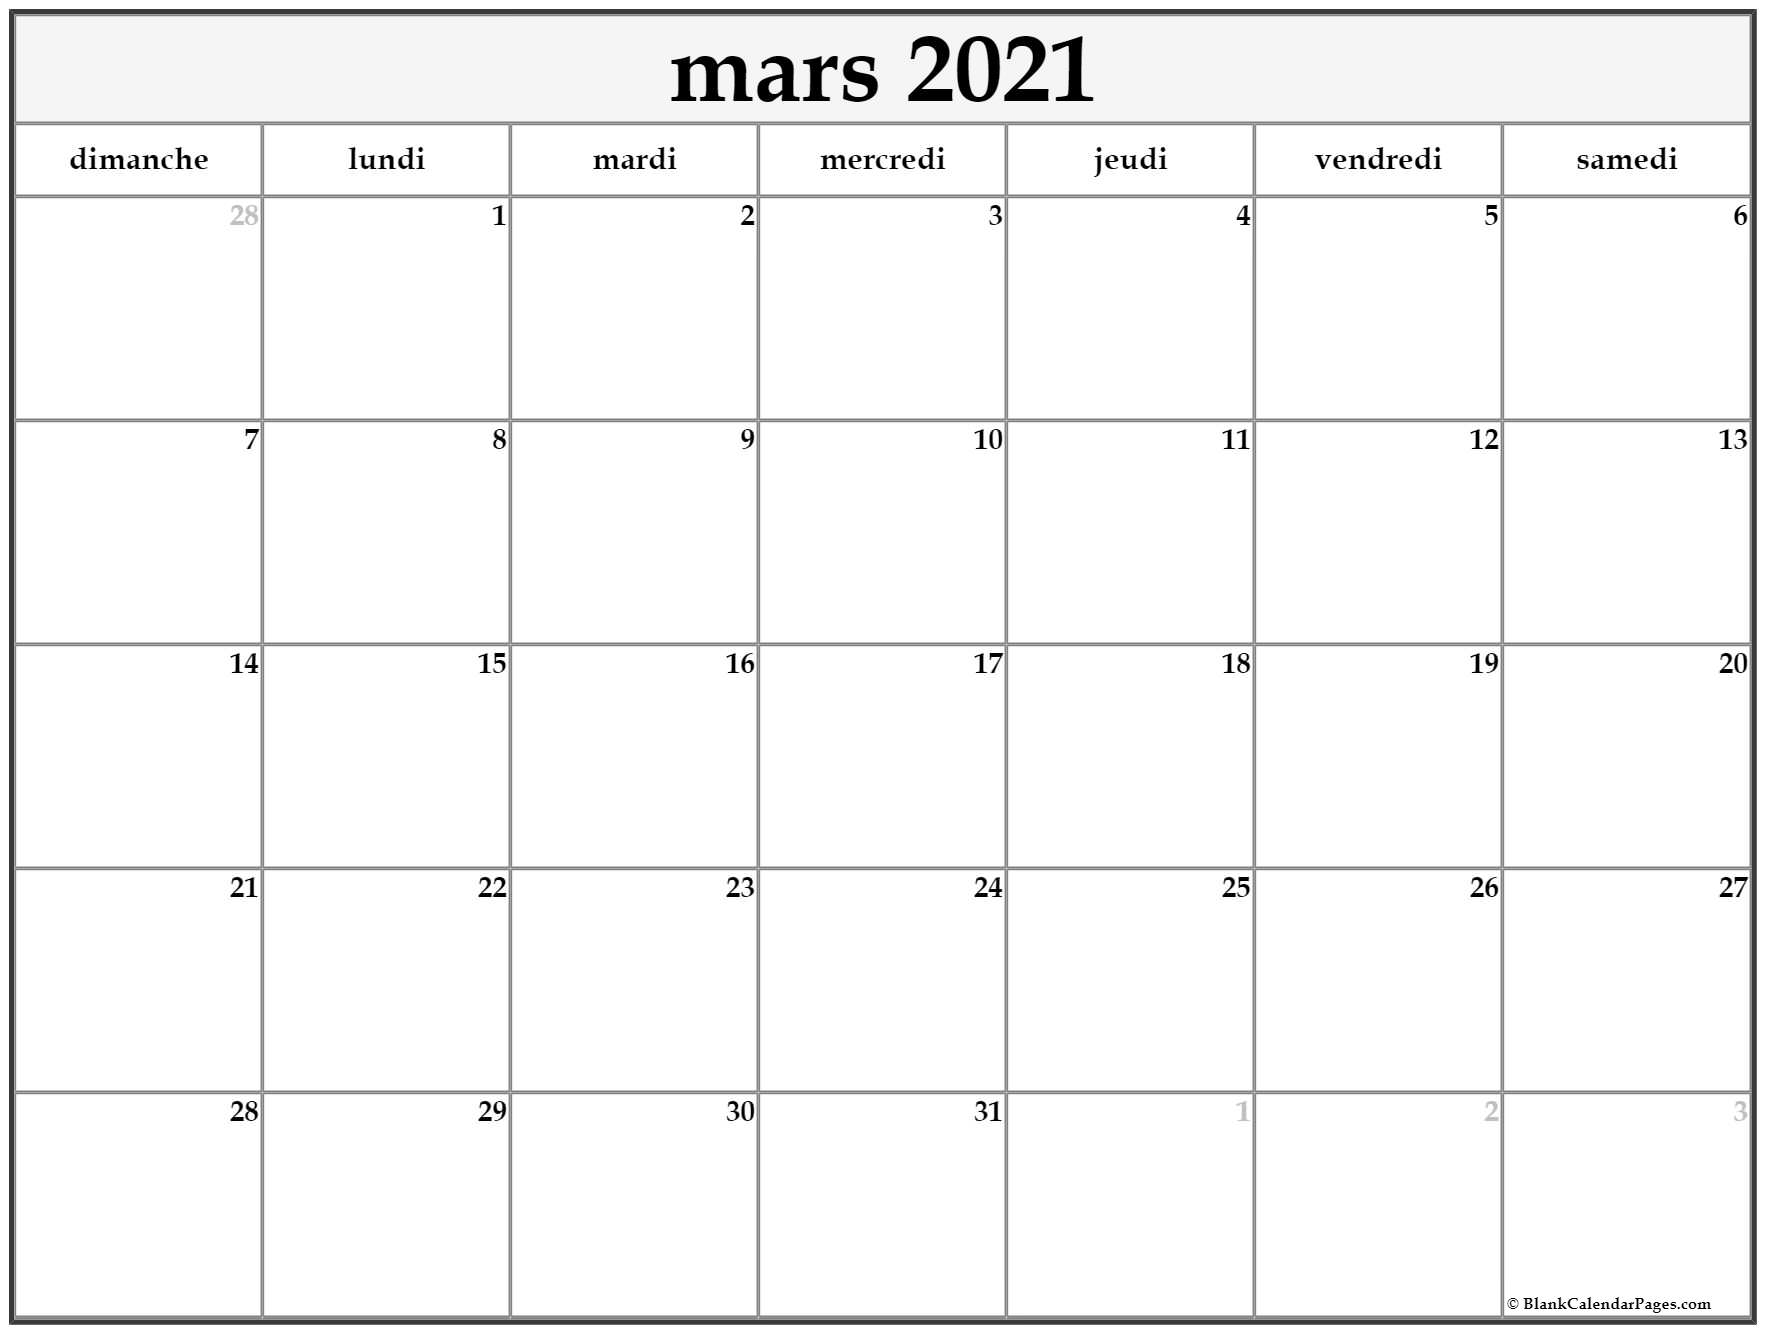 mars 2021 calendrier imprimable